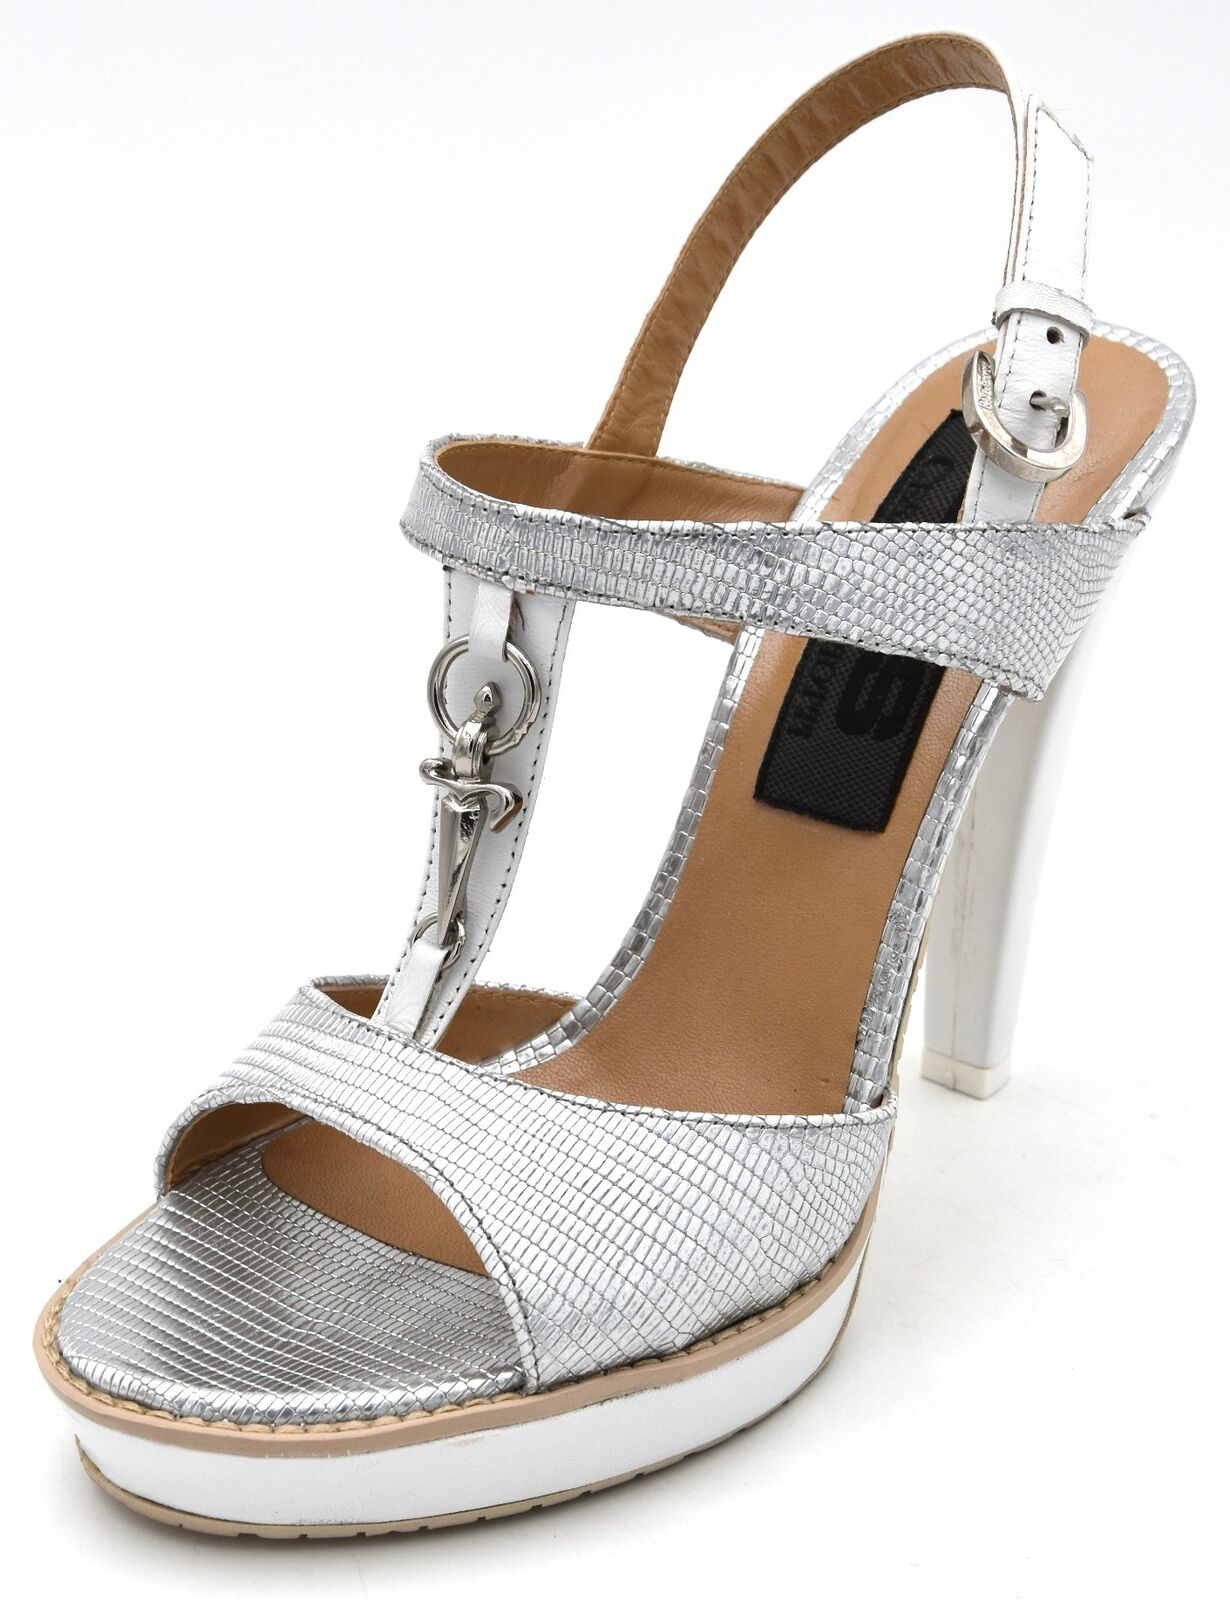 4us Cesare Paciotti Women shoes Sandal with Leather Strap Casual Art. llnd 3